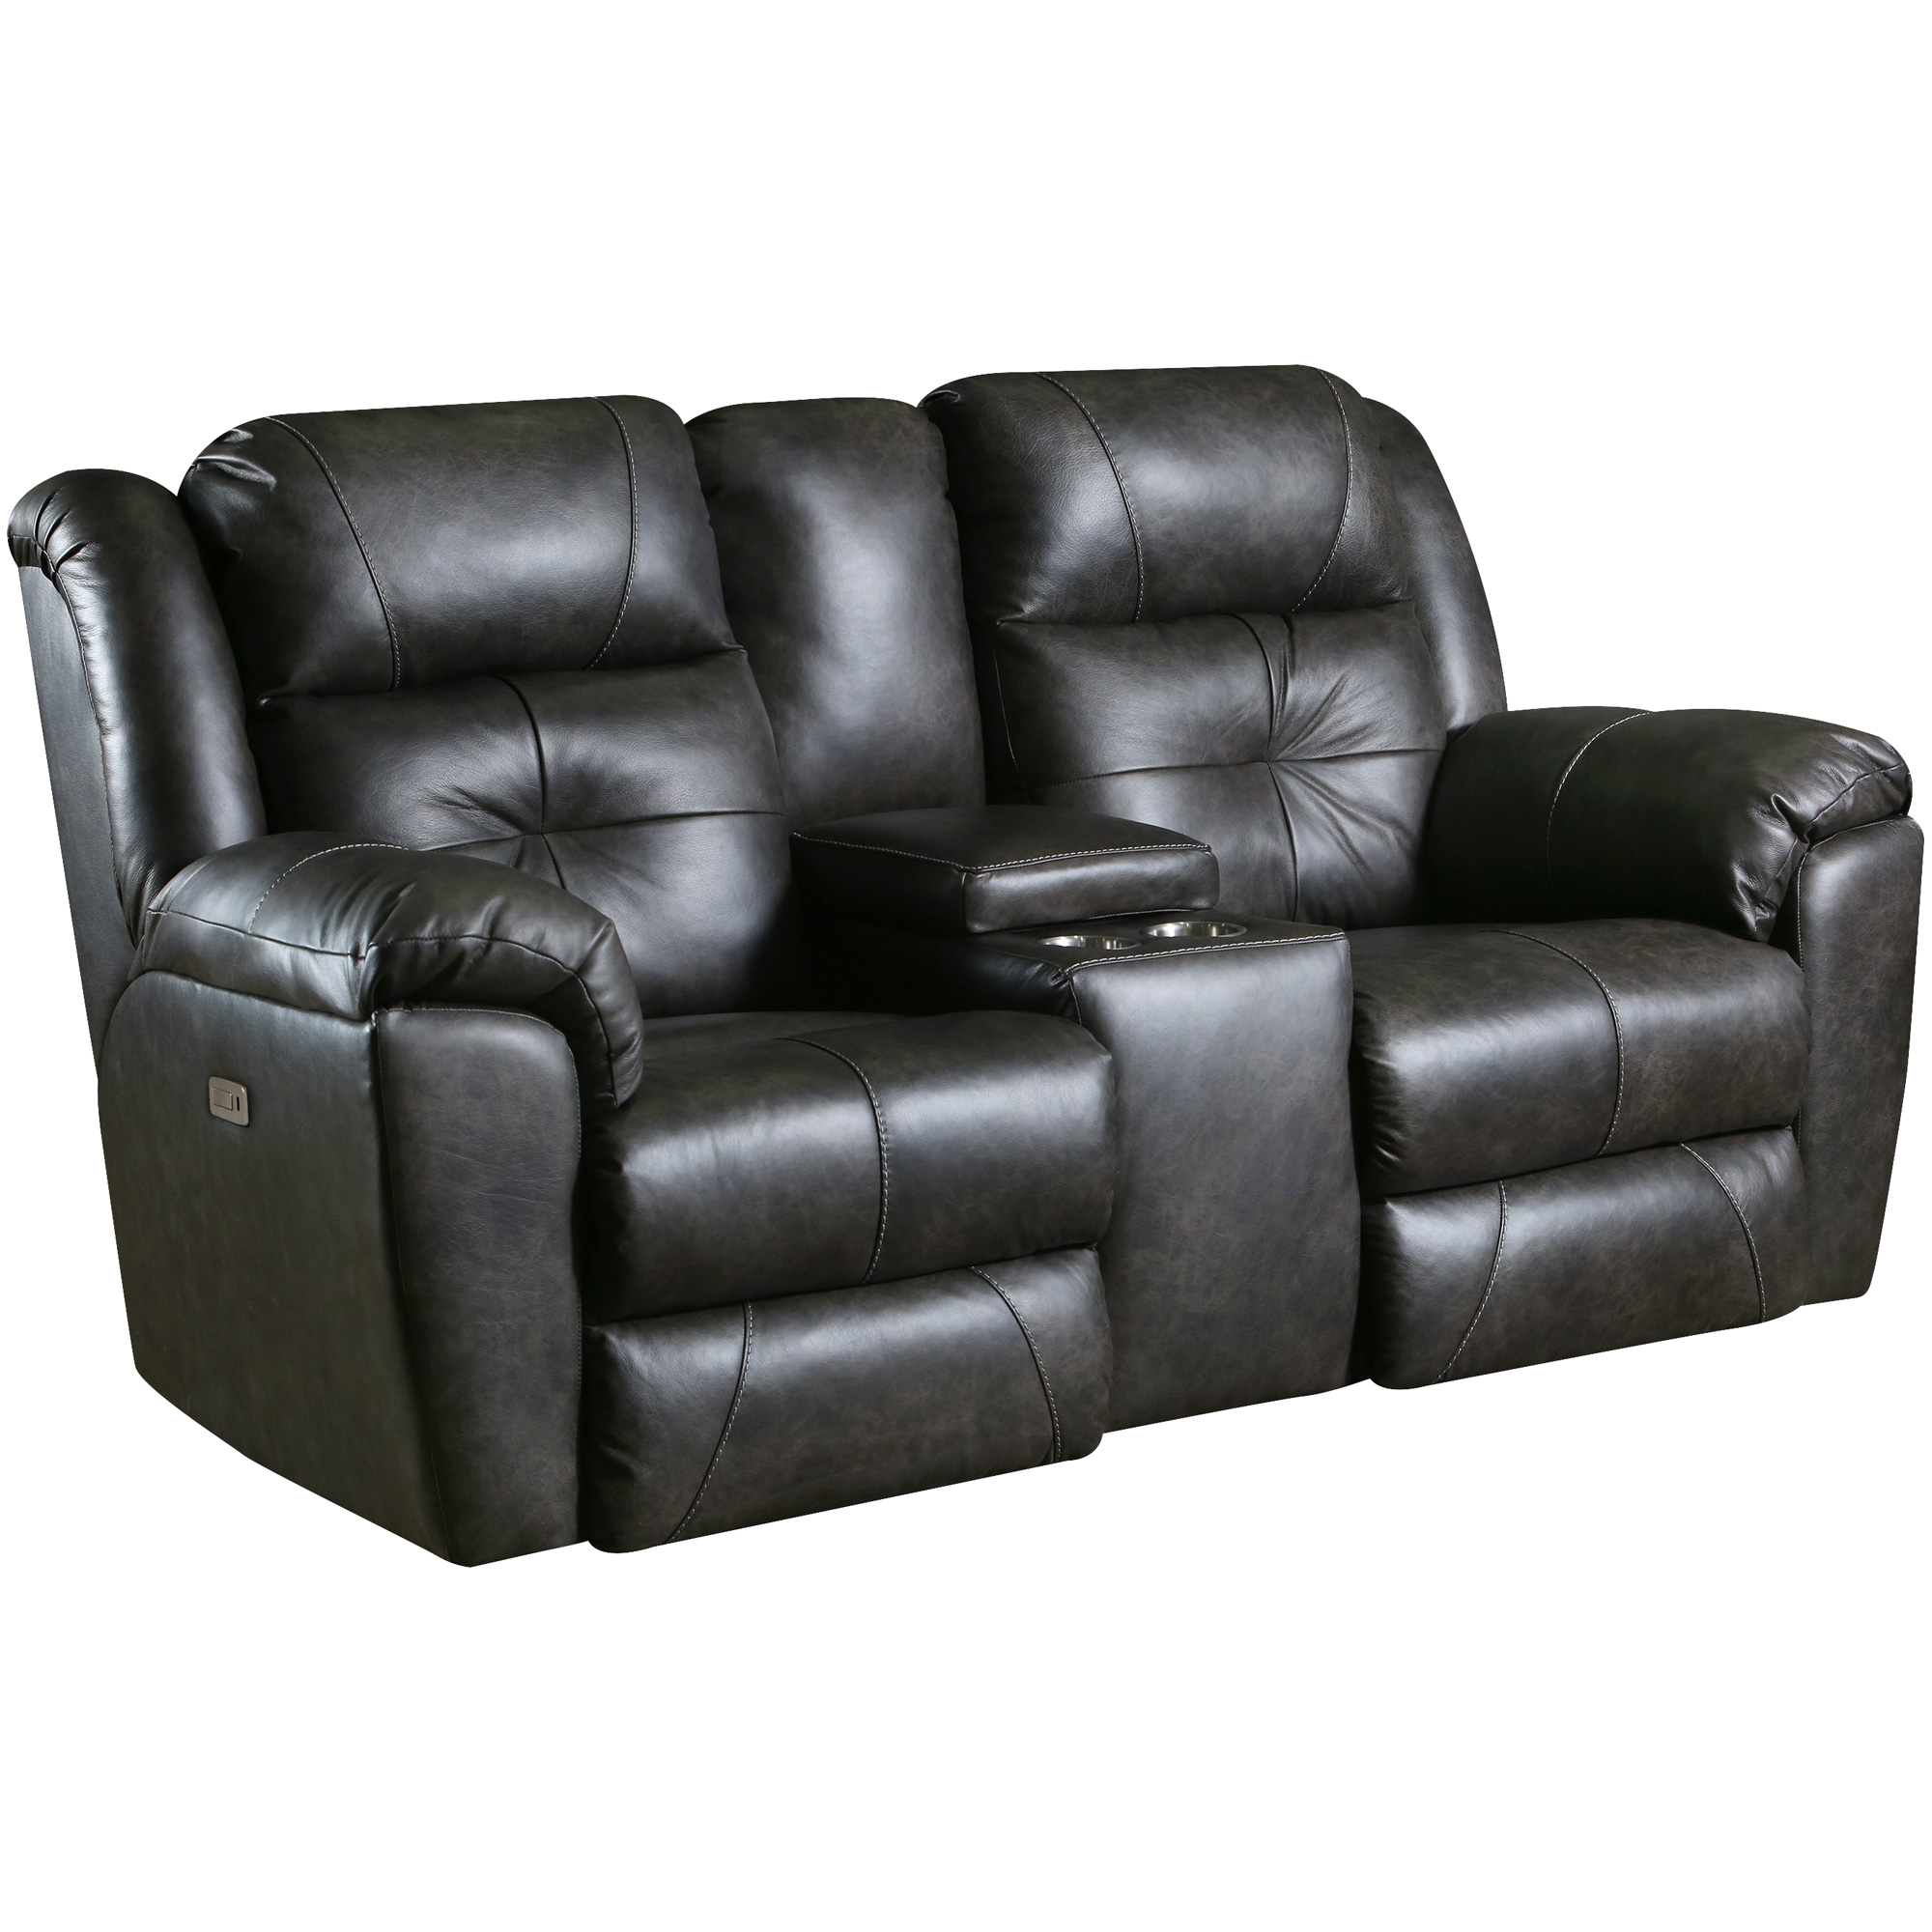 Southern Motion | Vista Slate Leather Power Reclining Console Loveseat Sofa